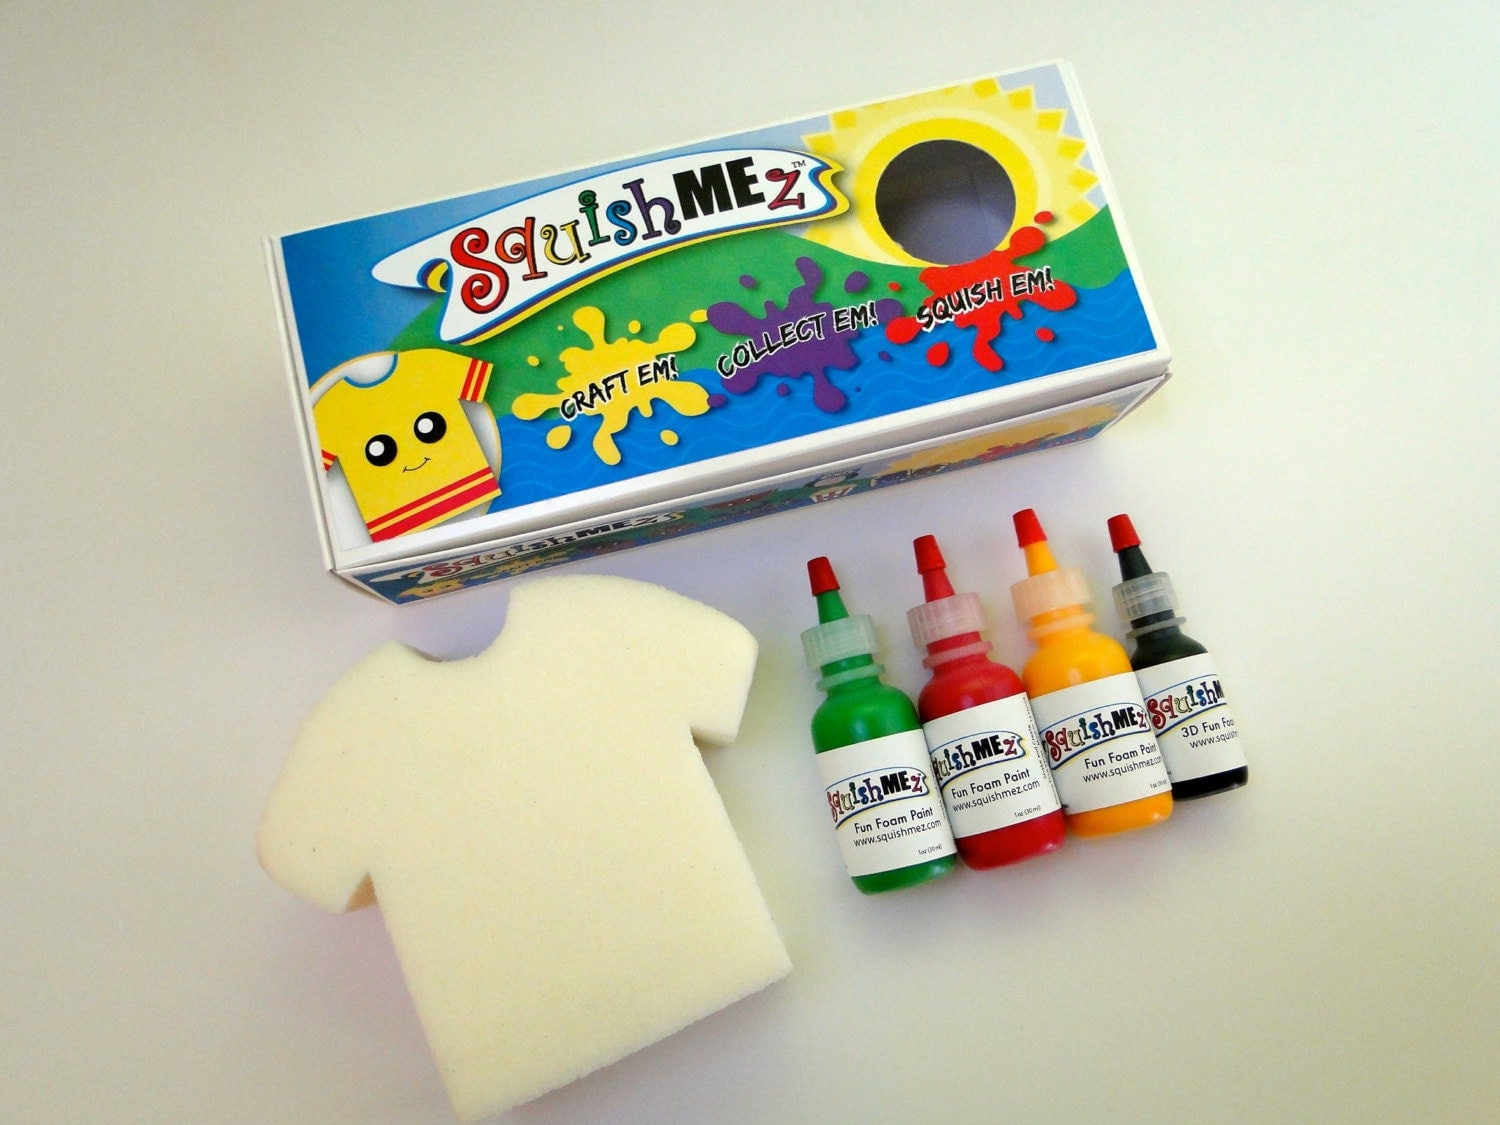 HOMEMADE Squishies Squishy - SquishMEz Craft Kit from TAOWIAAWIB on Etsy Studio